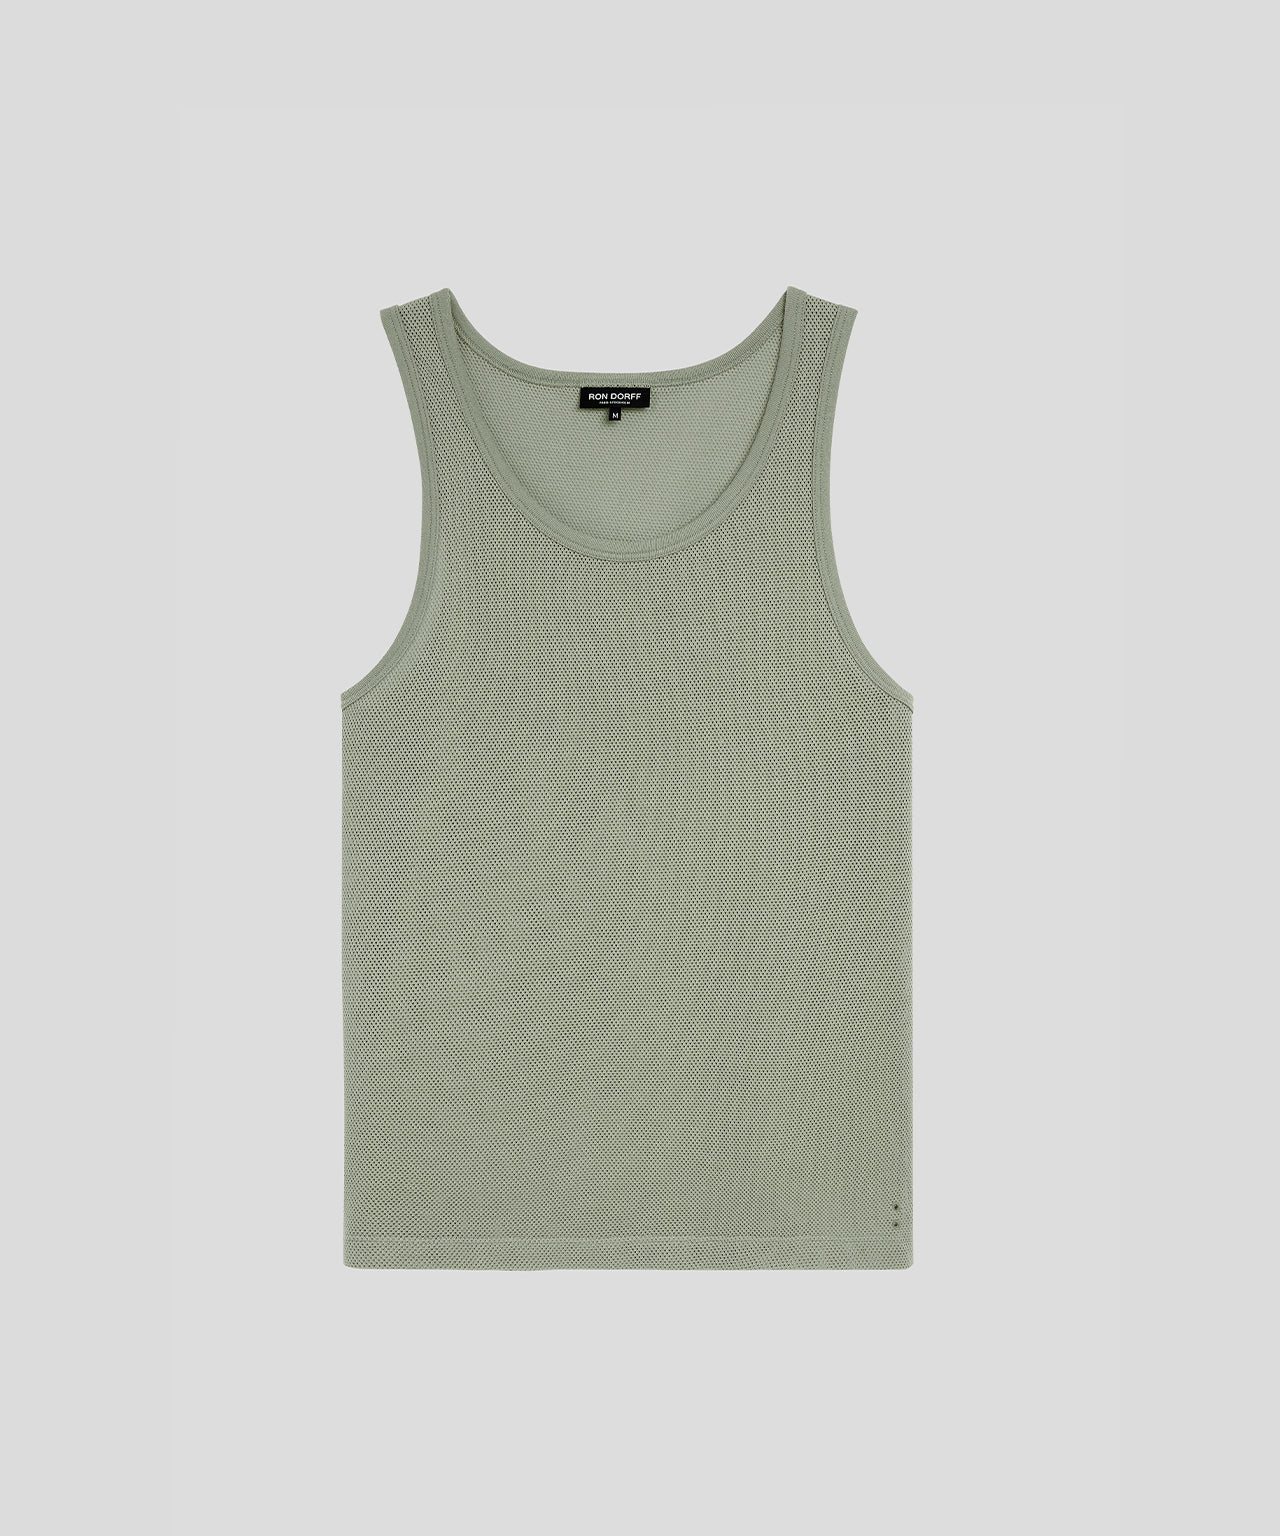 Underwear Tank Top Mesh His For Her - khaki